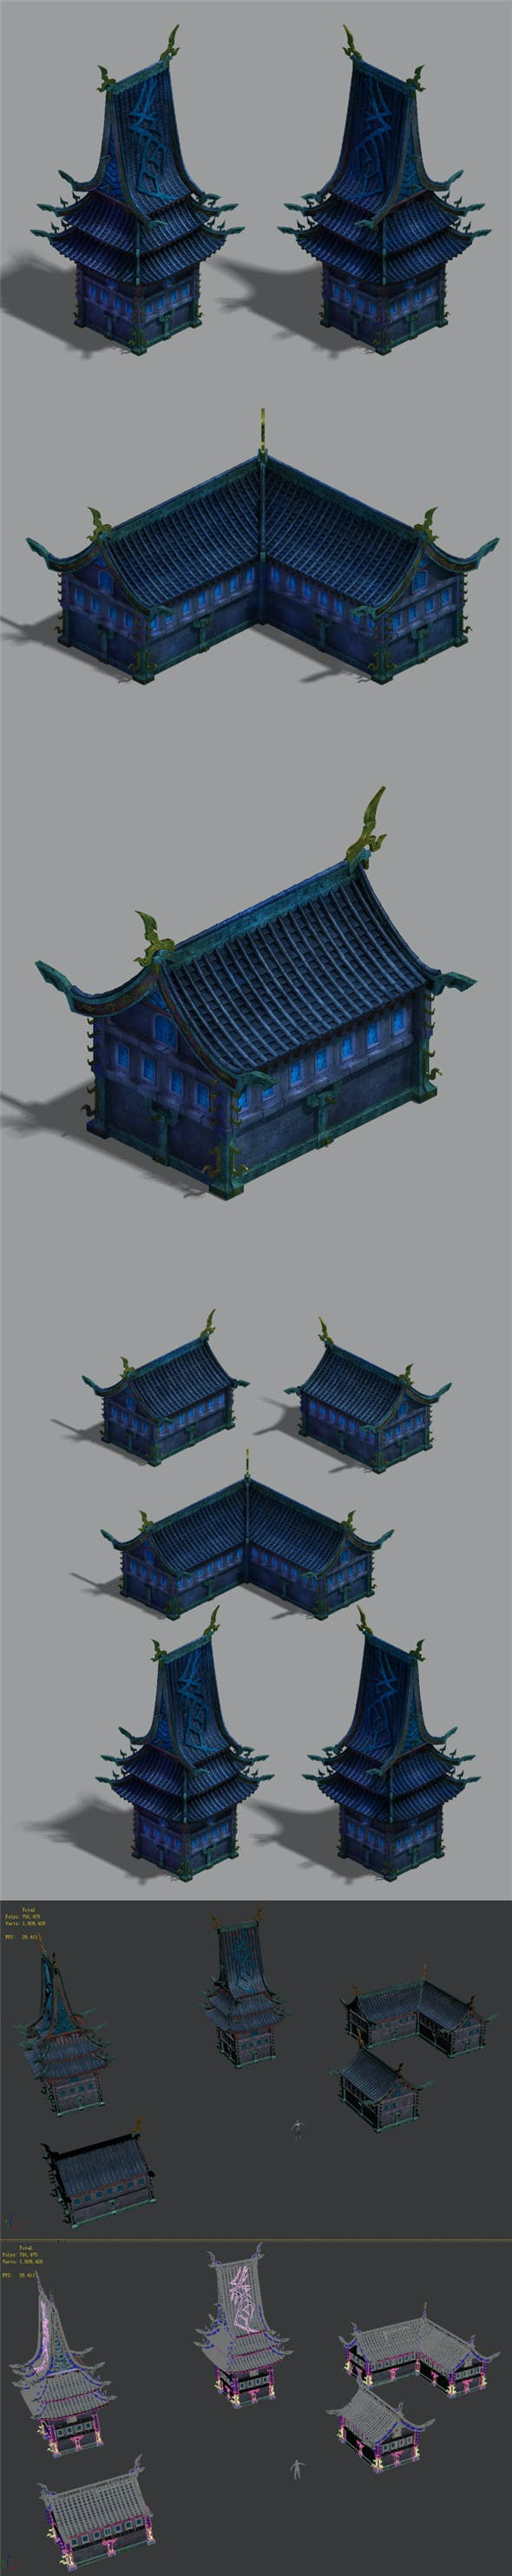 Magic territory - building a small house - 3DOcean Item for Sale